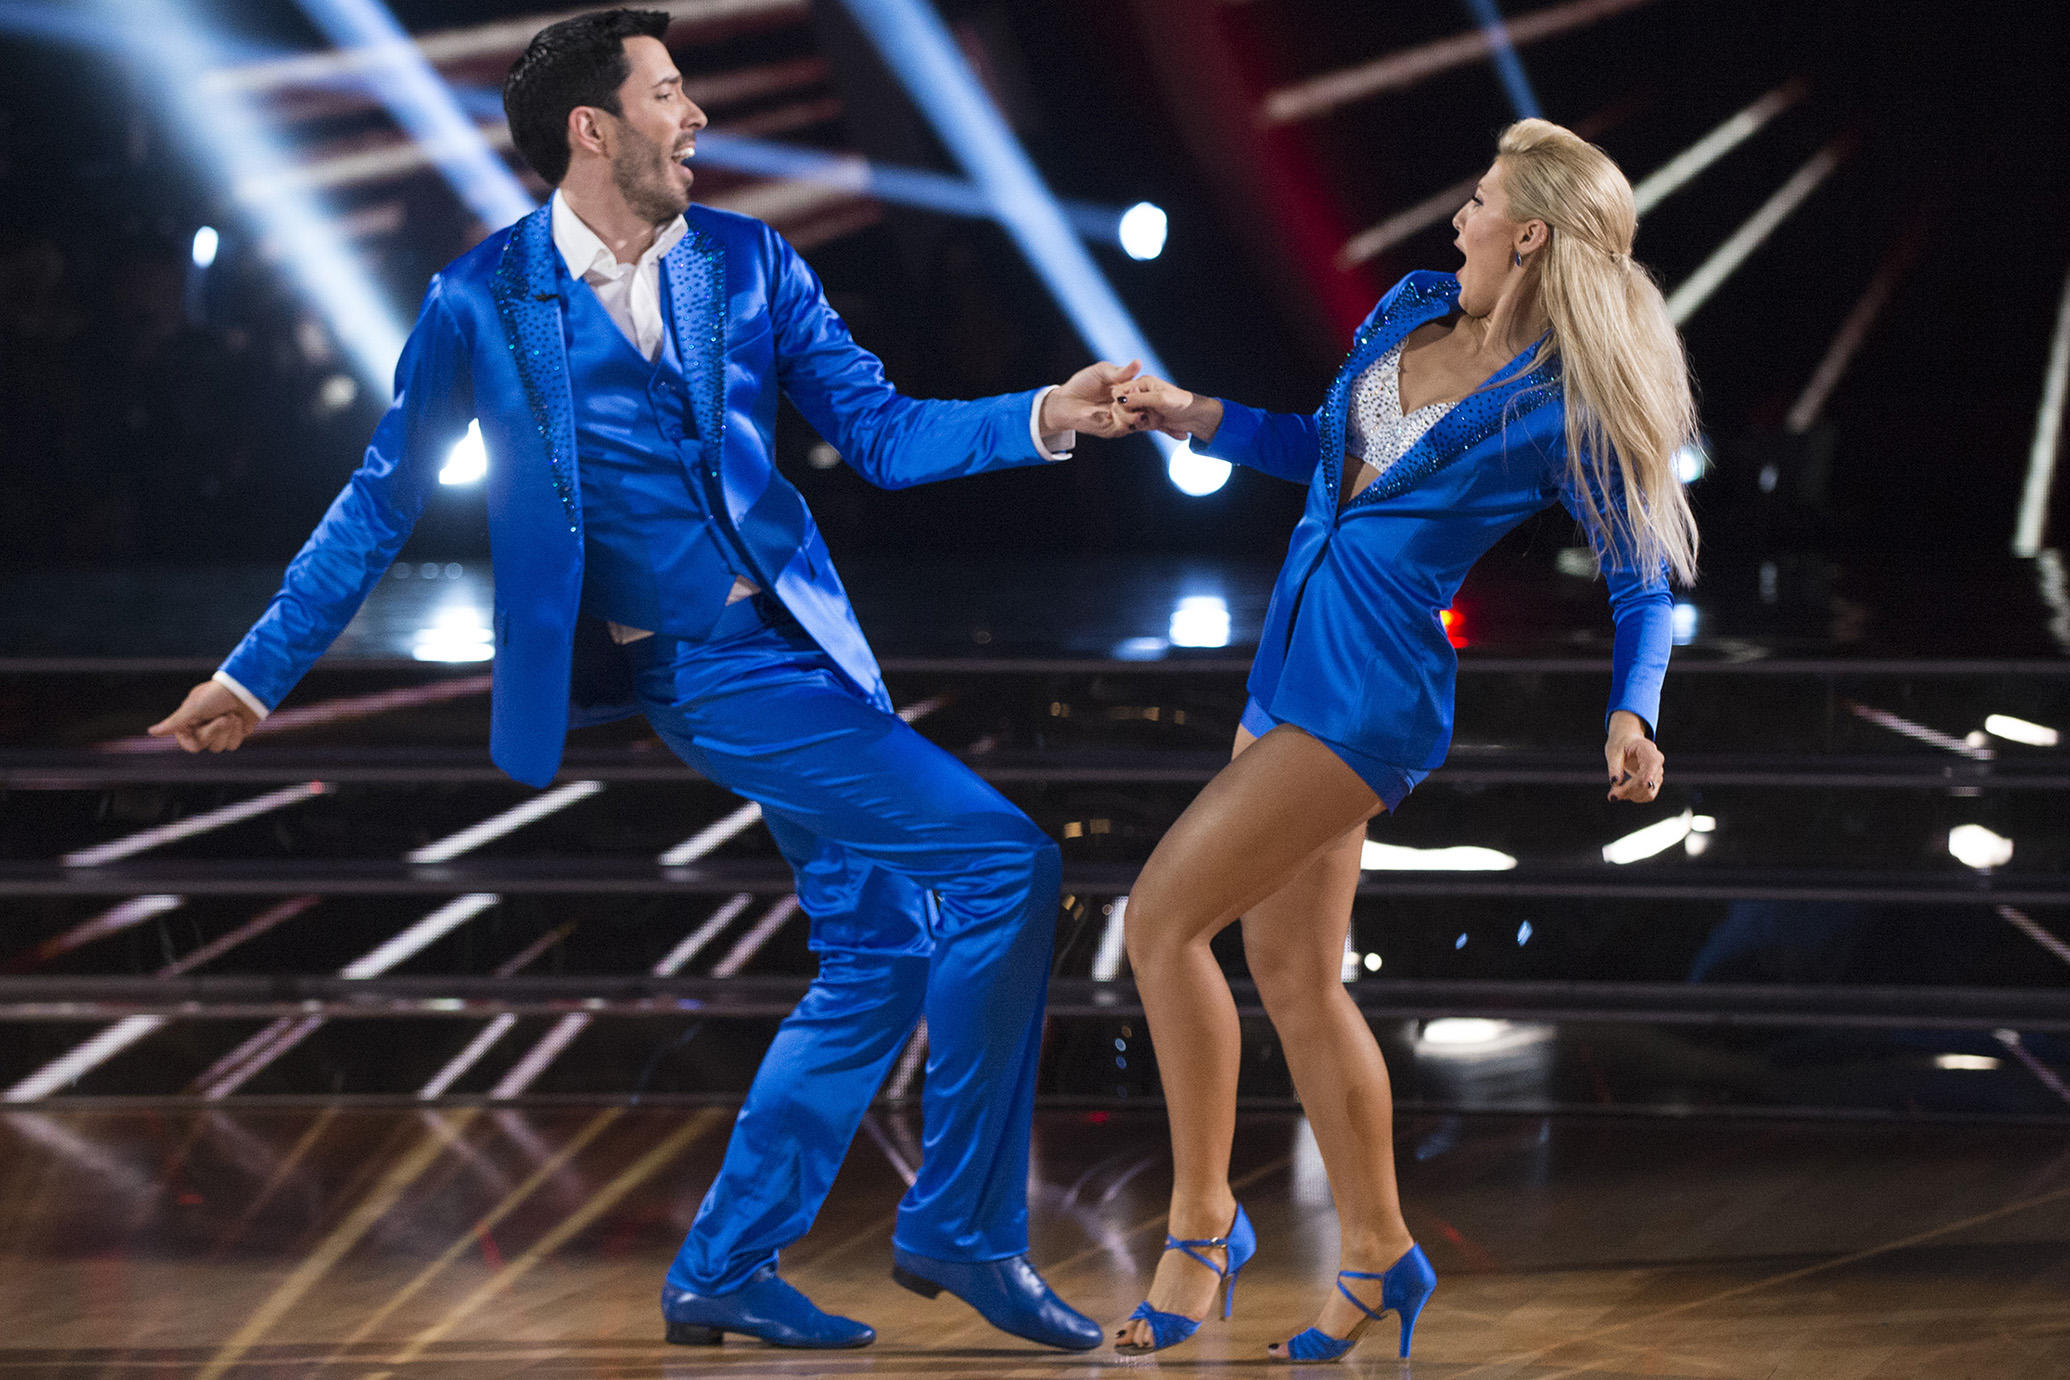 'Dancing With The Stars' All-Stars: Season 15 Cast Announced